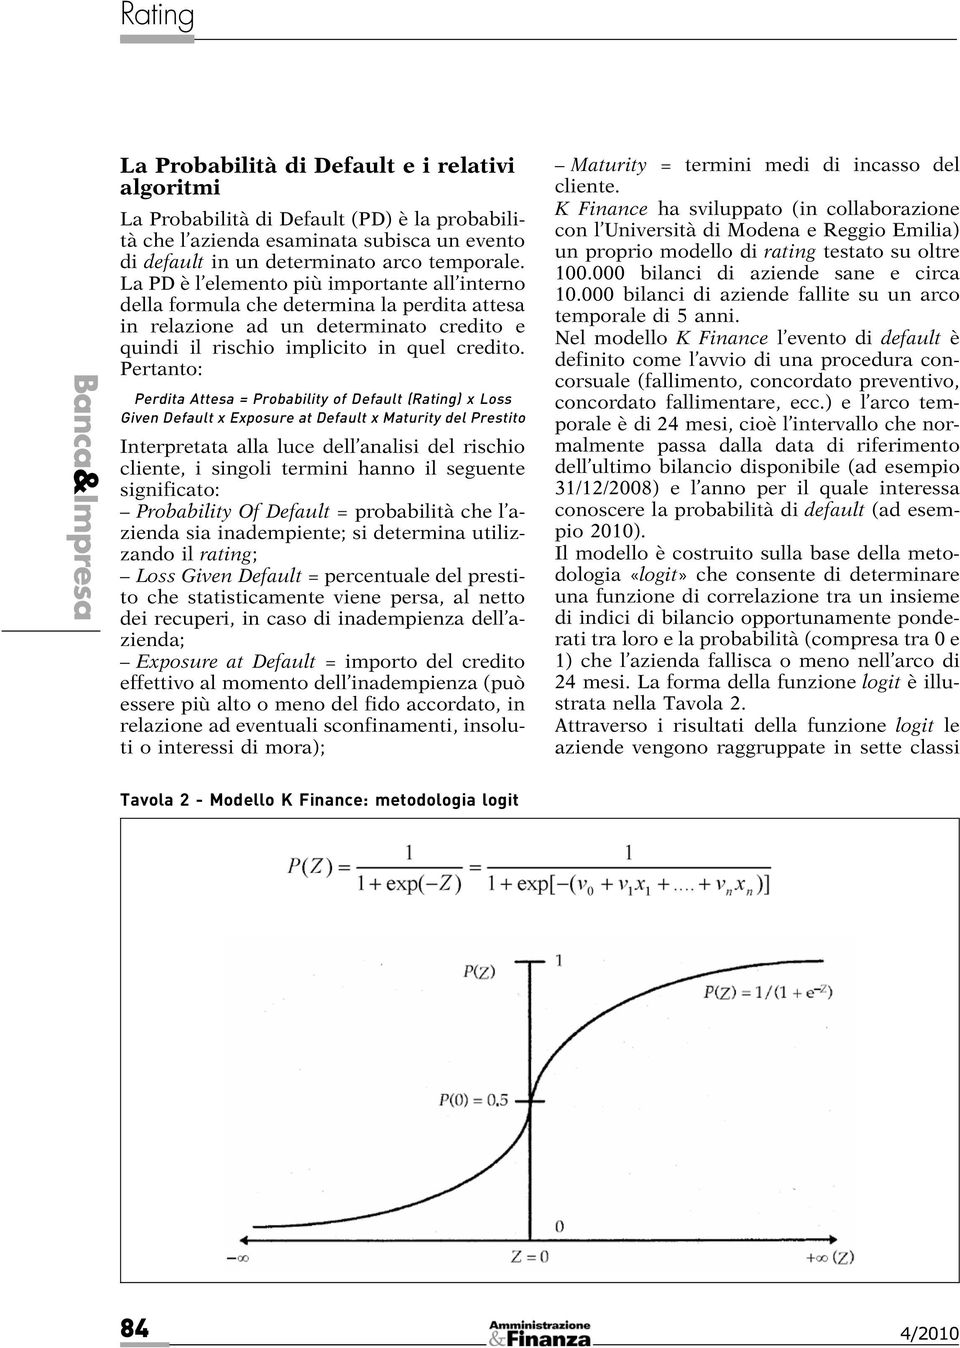 Pertanto: Perdita Attesa = Probability of Default (Rating) x Loss Given Default x Exposure at Default x Maturity del Prestito Interpretata alla luce dell analisi del rischio cliente, i singoli